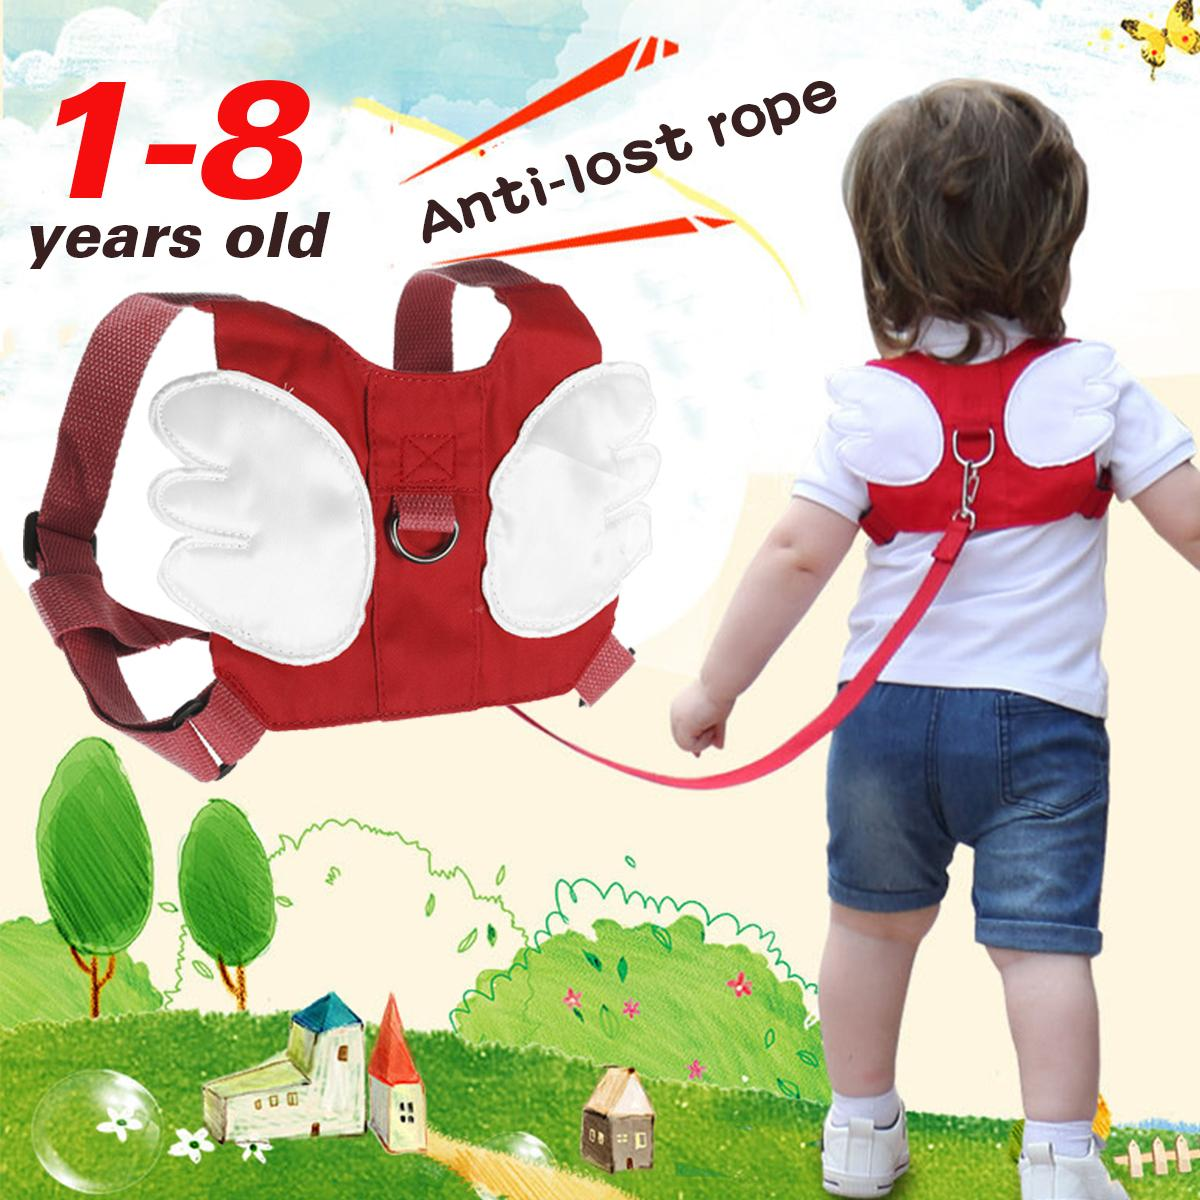 children-anti-lost-safety-rope-band-harness-strap-toddler-walking-pulling-reins-baby-walker-anti-lost-wrist-link-kid-lost